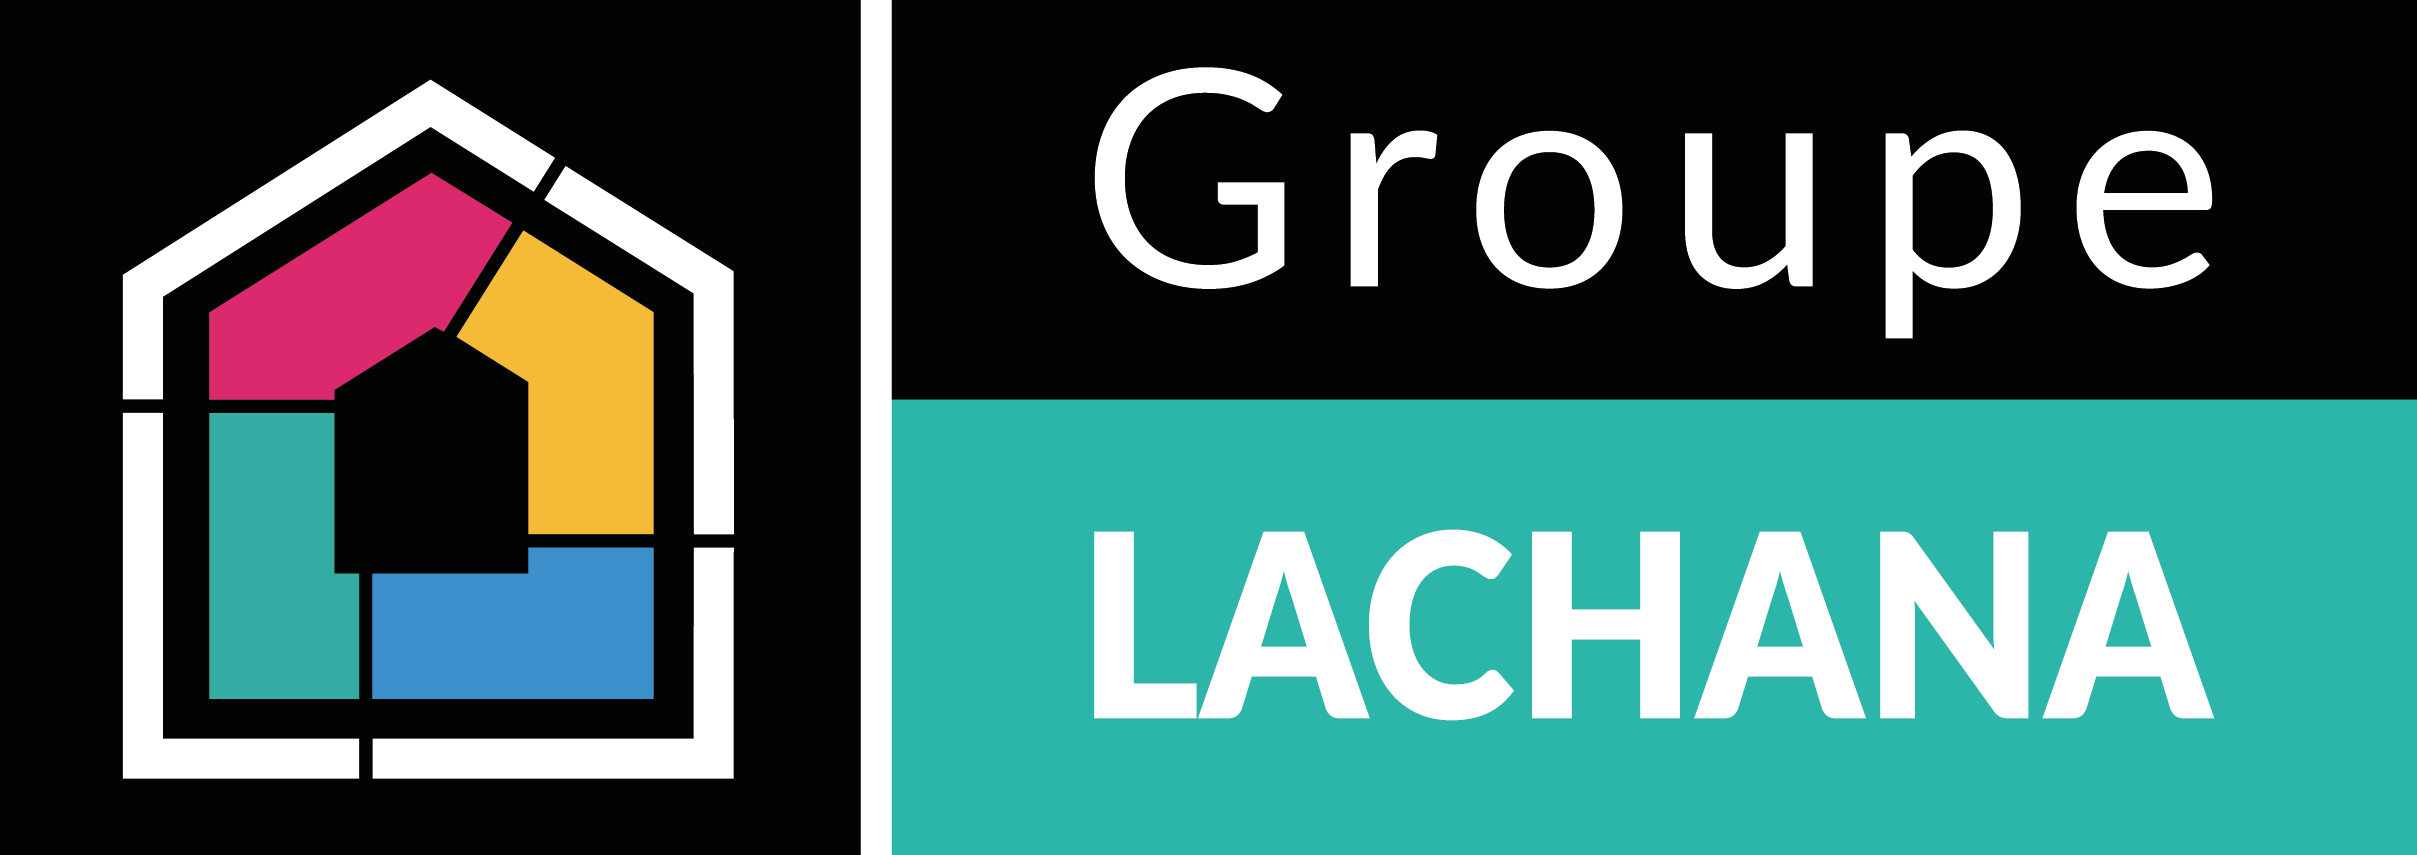 Groupe Lachana